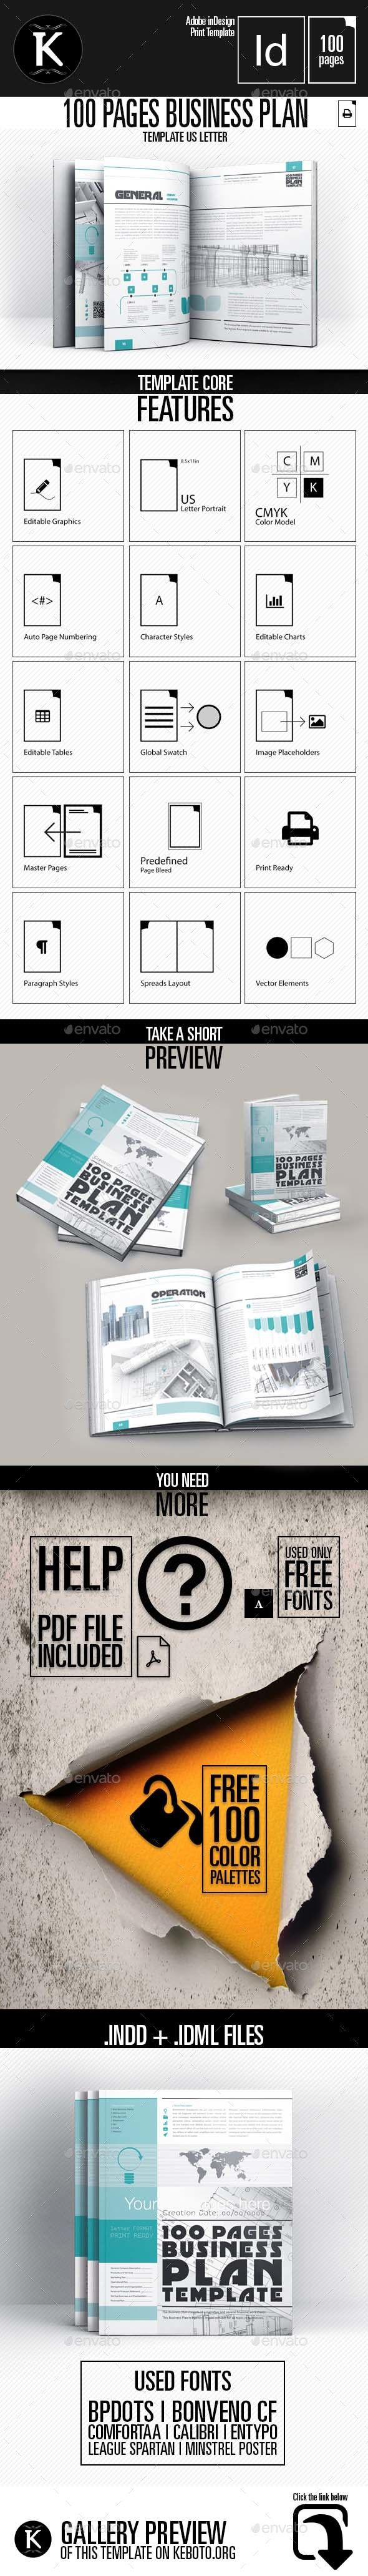 best ideas about business plan presentation 100 pages business plan template letter indesign indd plan presentation available here